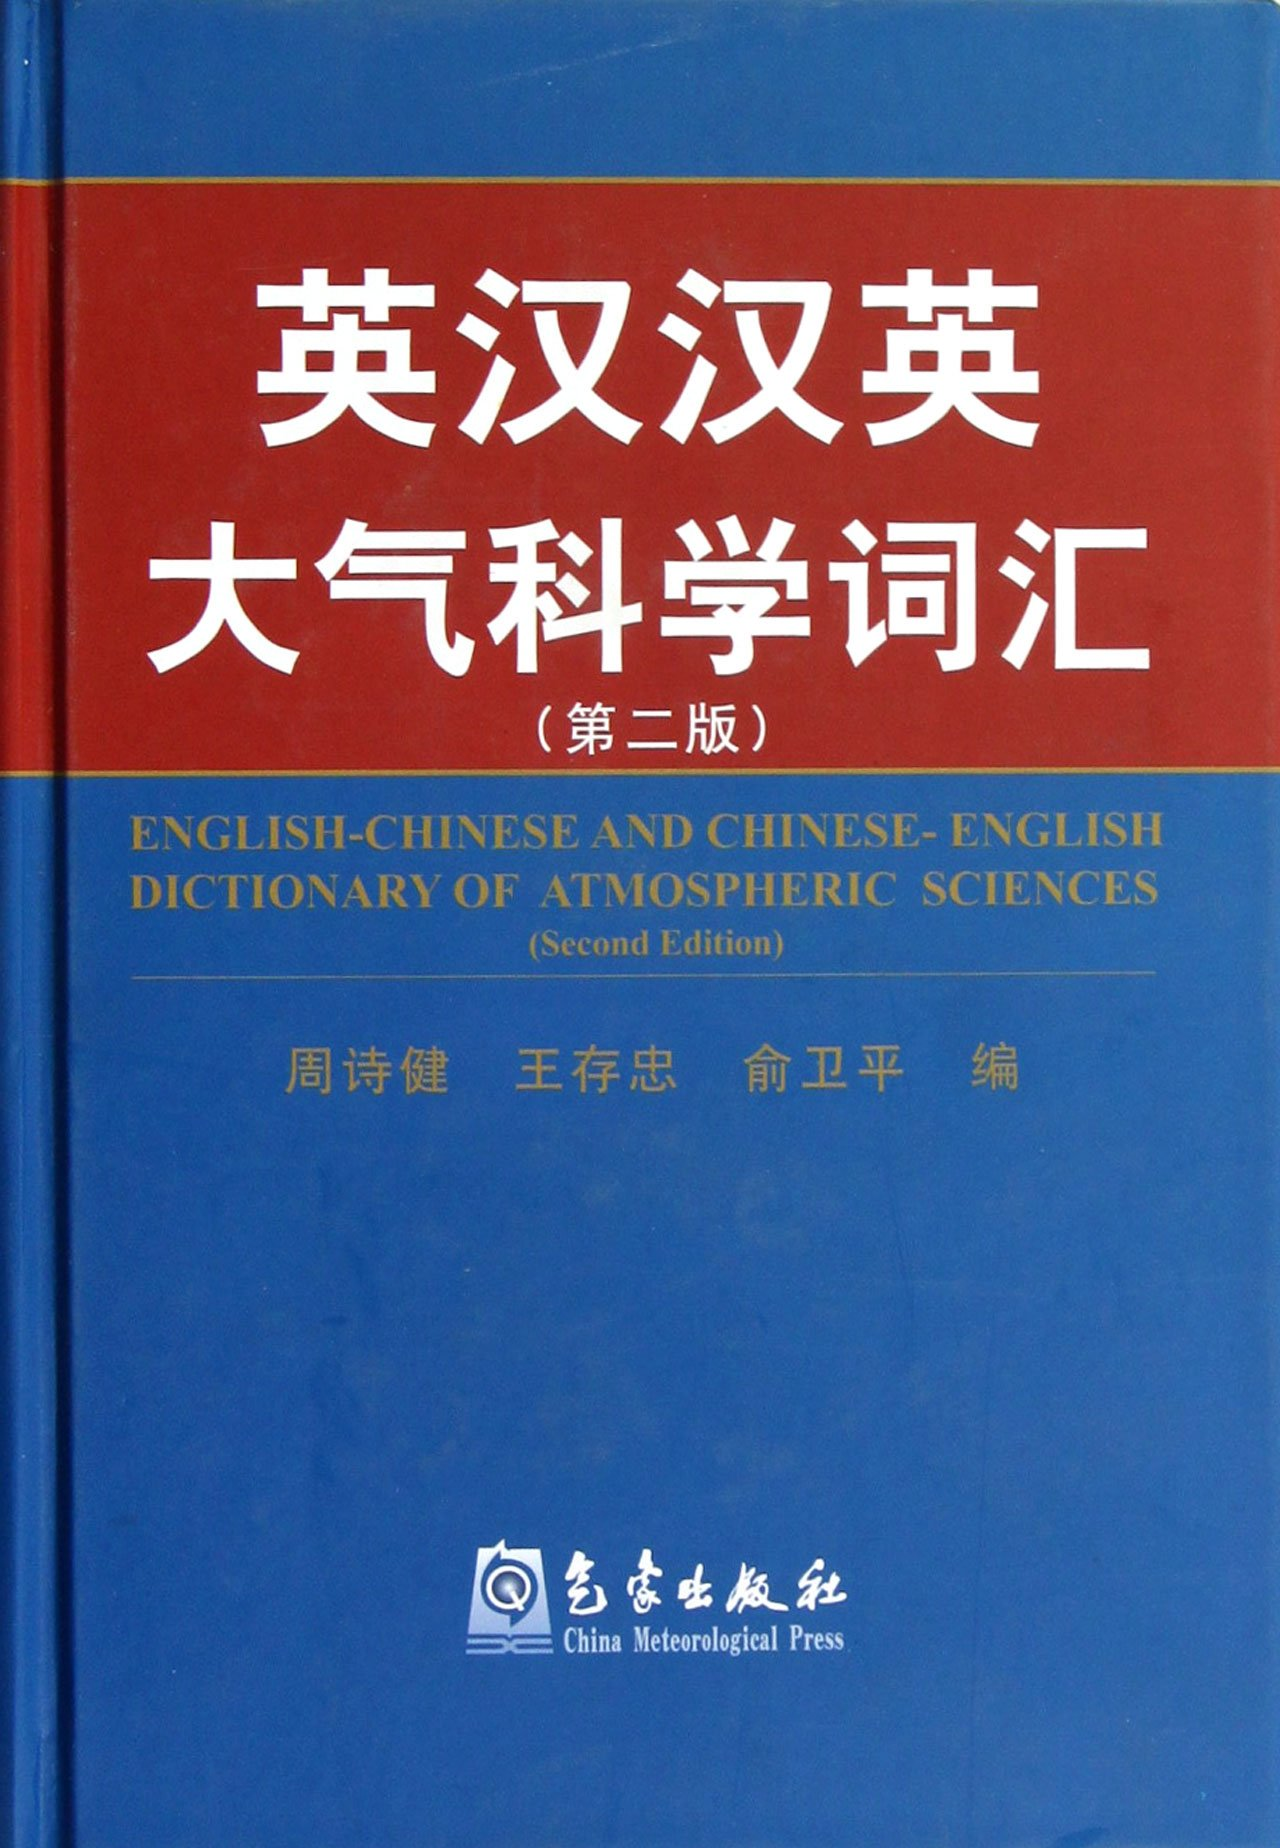 Download English-Chinese and Chinese-English Dictionary of Atmospheric Sciences, 2nd Edition pdf